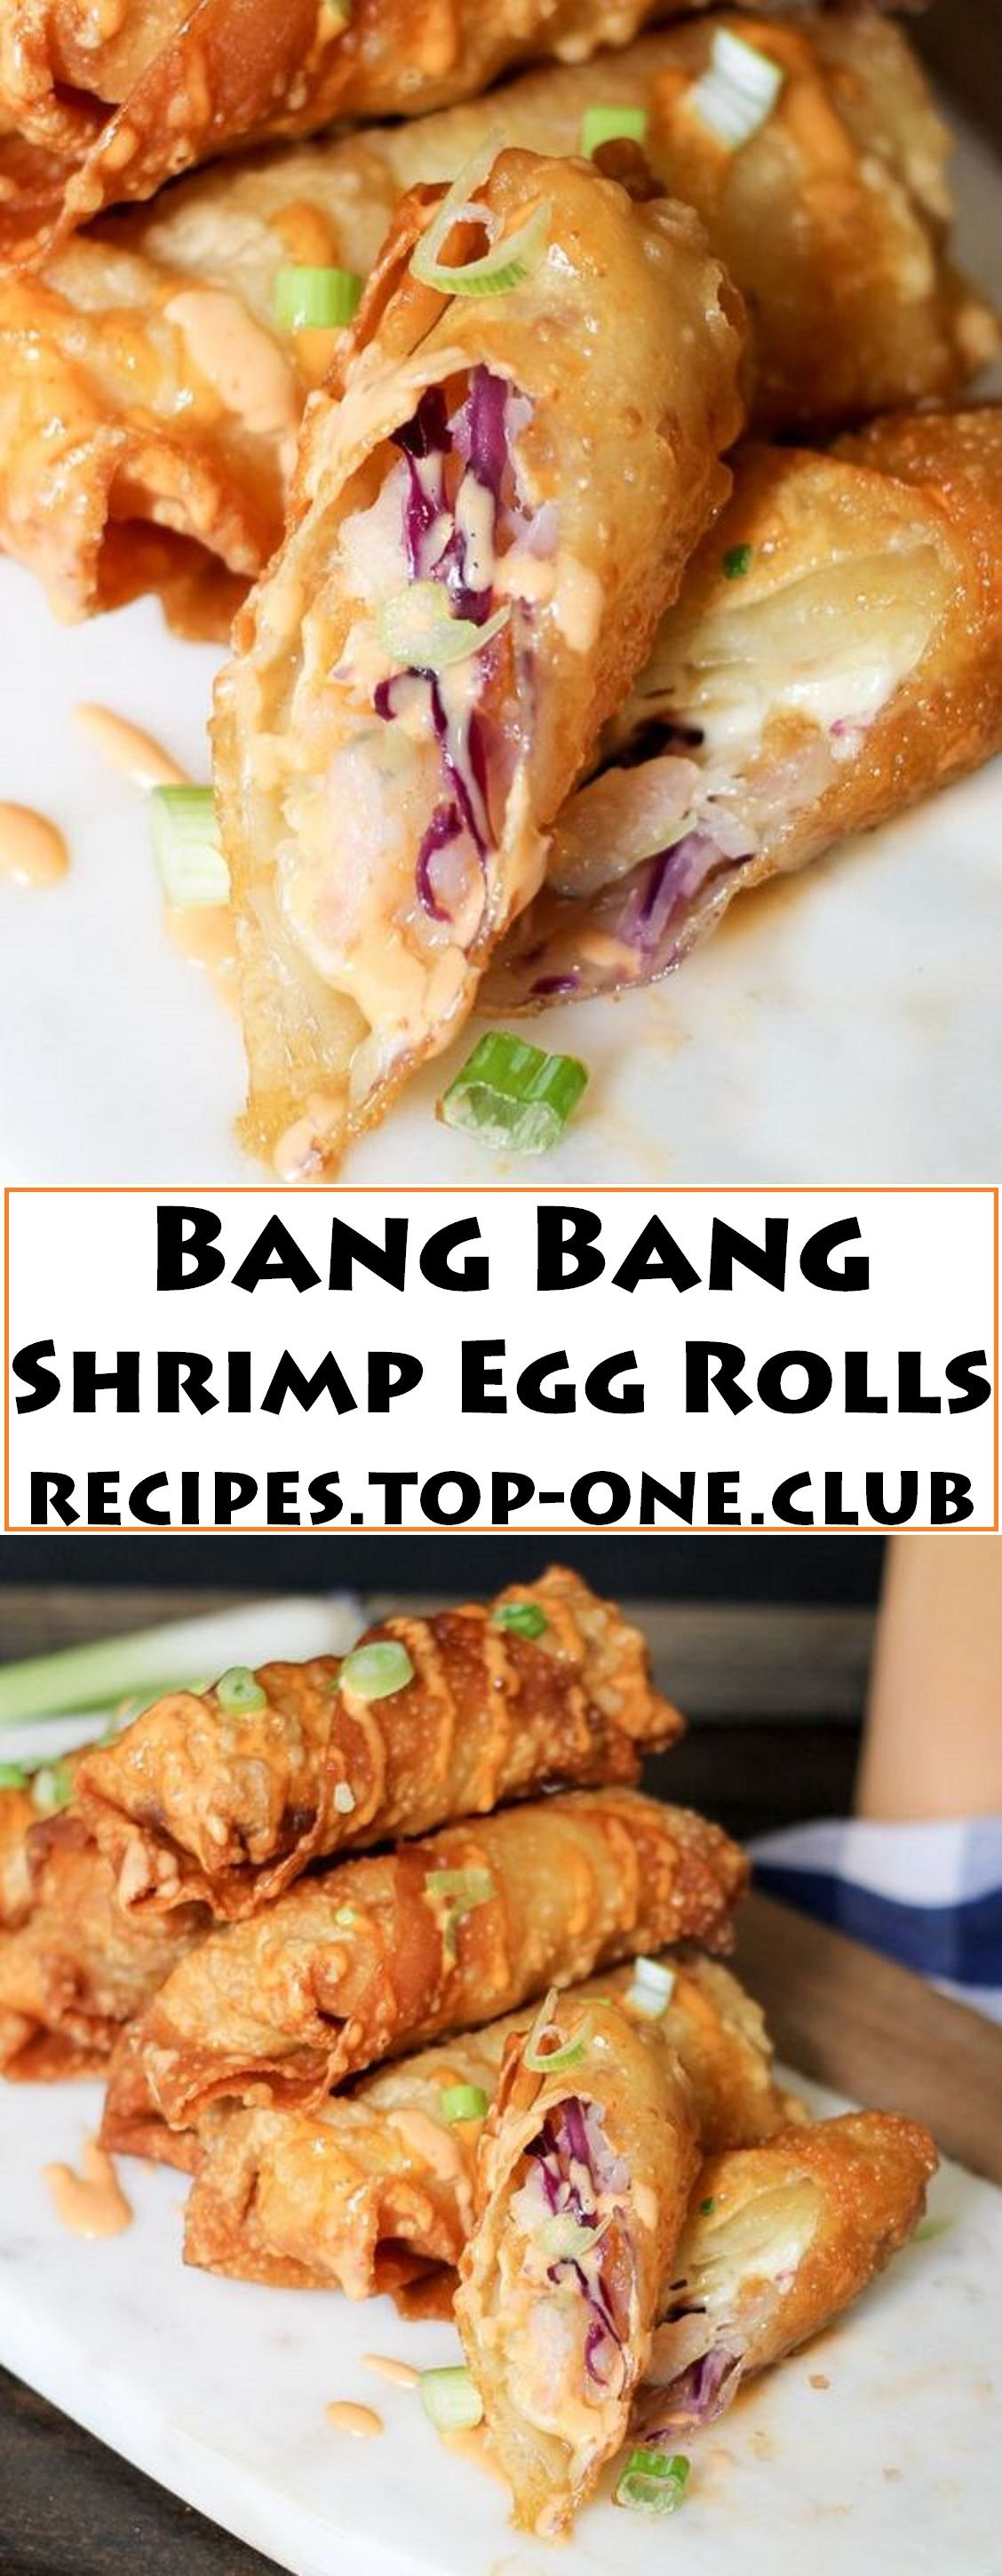 Bang Bang Shrimp Egg Rolls  #seafooddishes